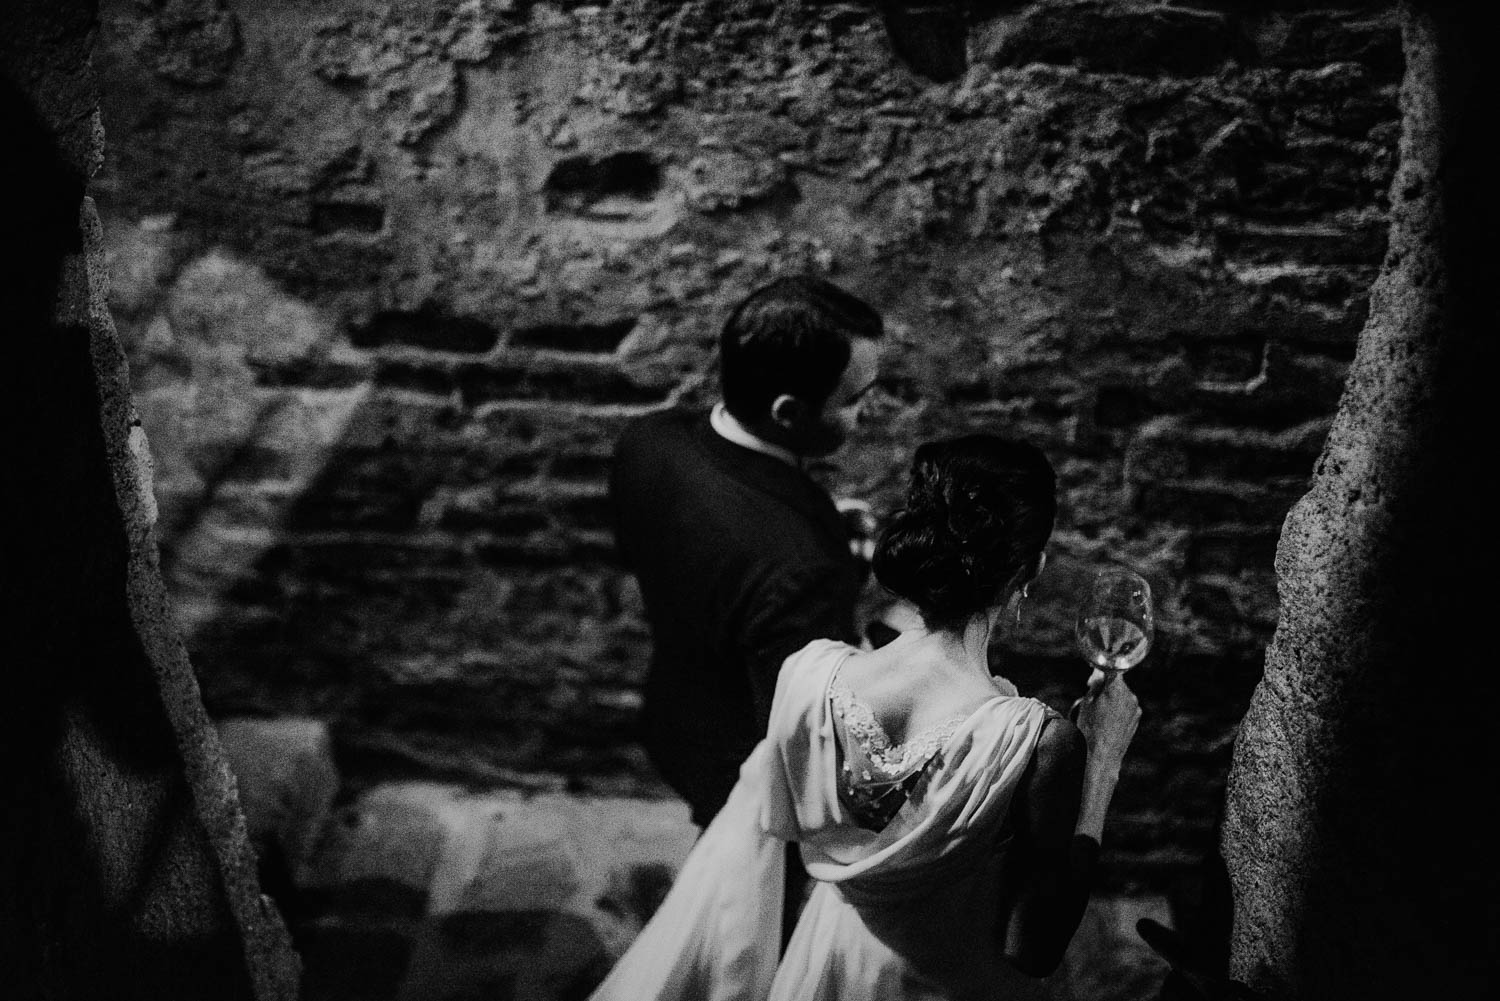 portofino-wedding-photography-rafal-bojar-122.jpg